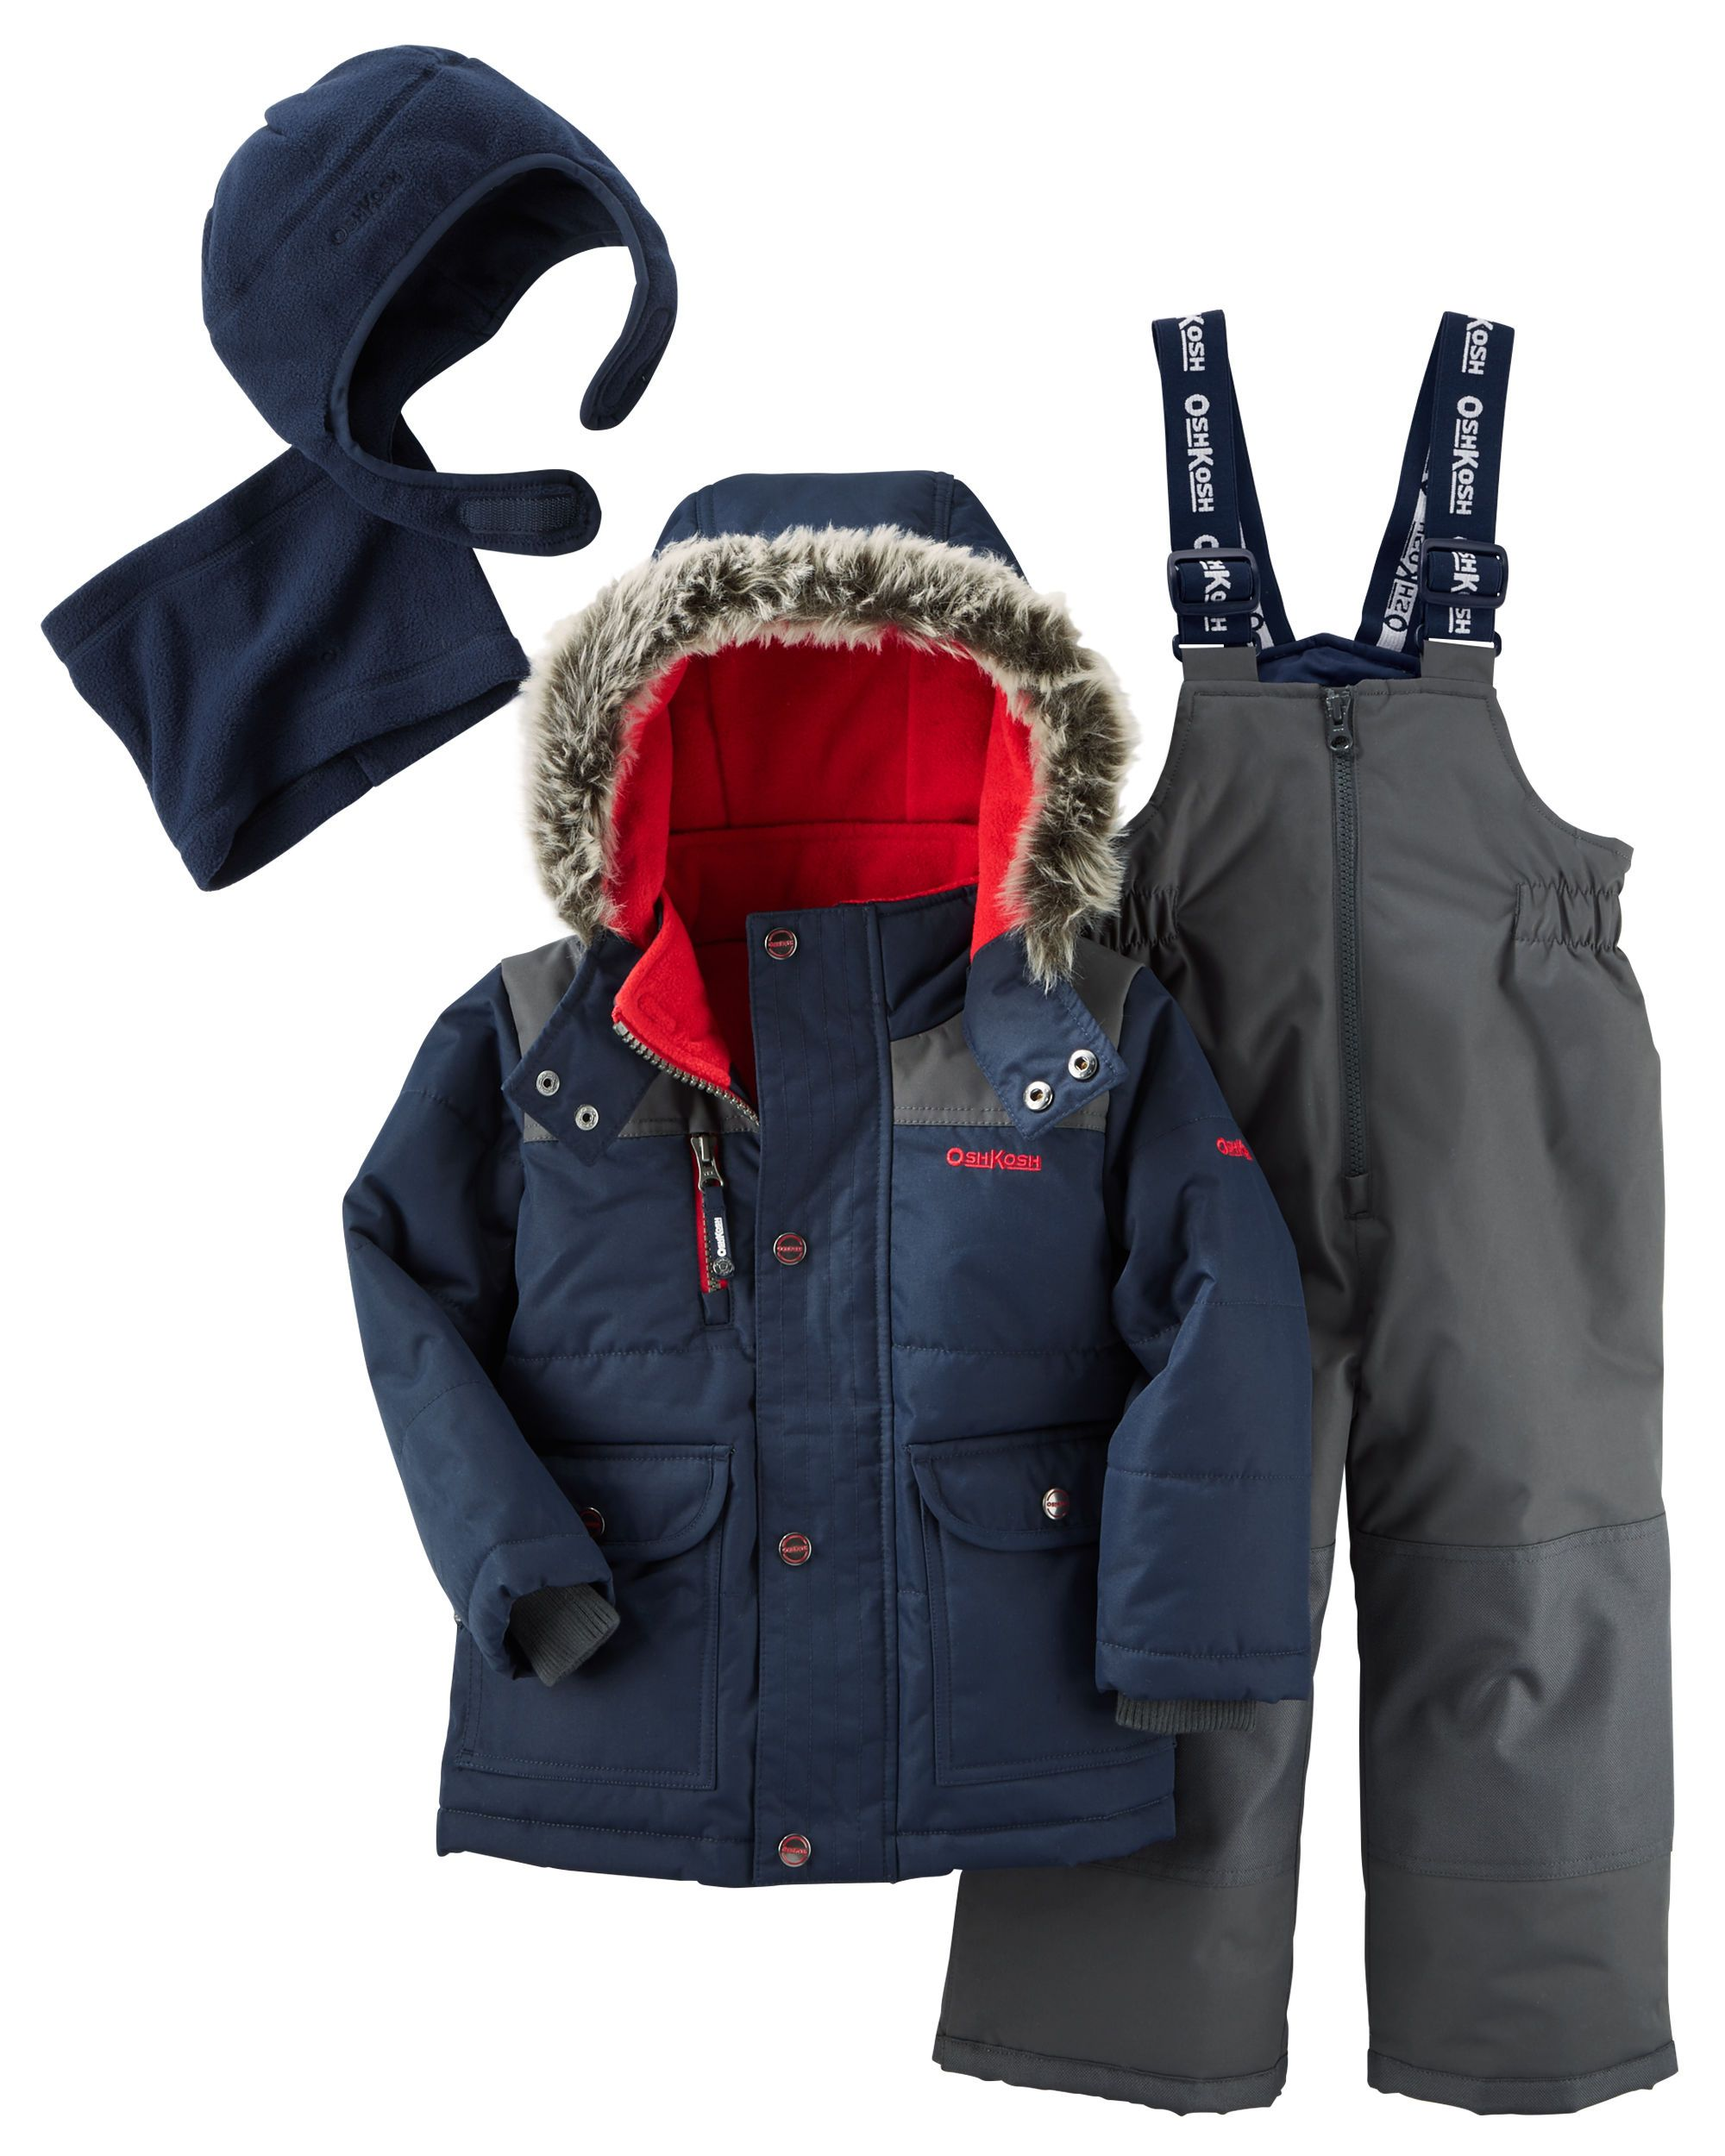 0b9fd3d9d 2-Piece Snowsuit with Microfleece Hat   Neck Warmer